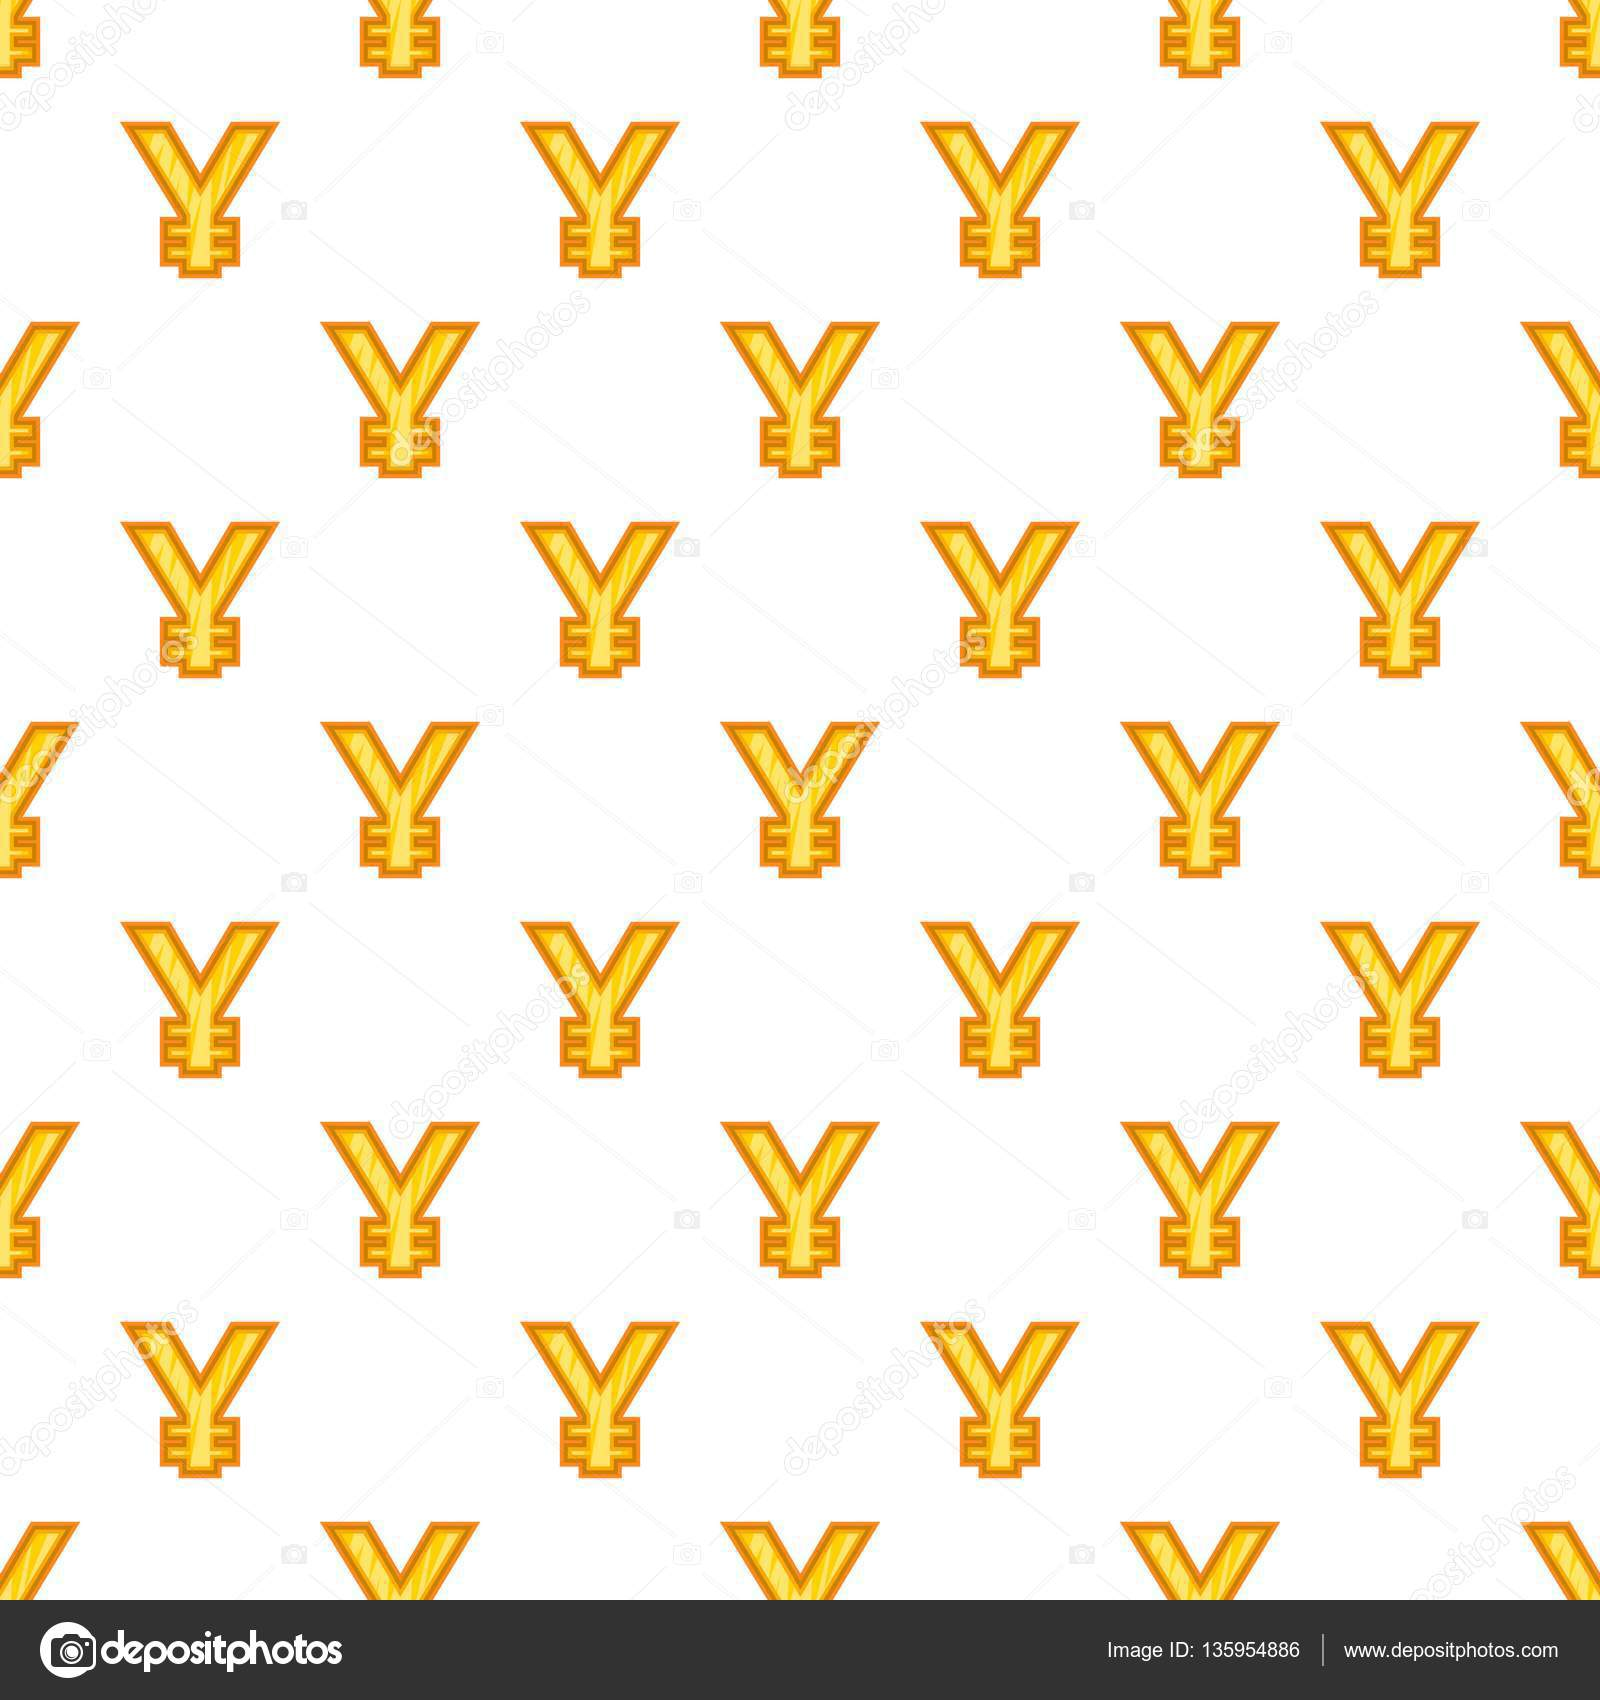 Japan Yen Currency Symbol Pattern Cartoon Style Stock Vector